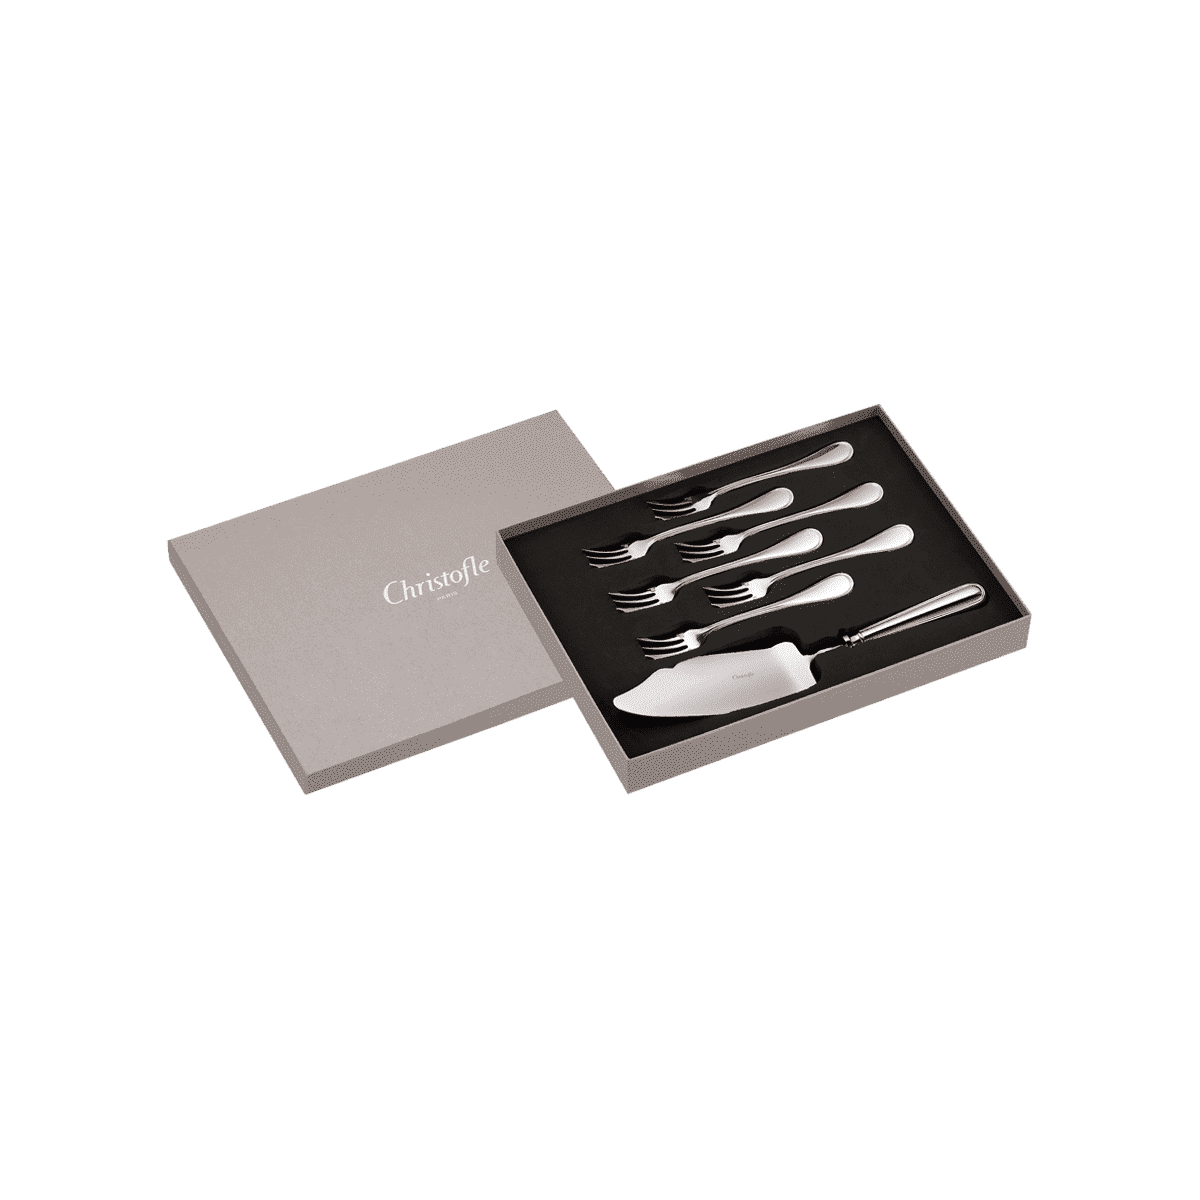 christofle silver plated albi gift box cake server and 6 forks